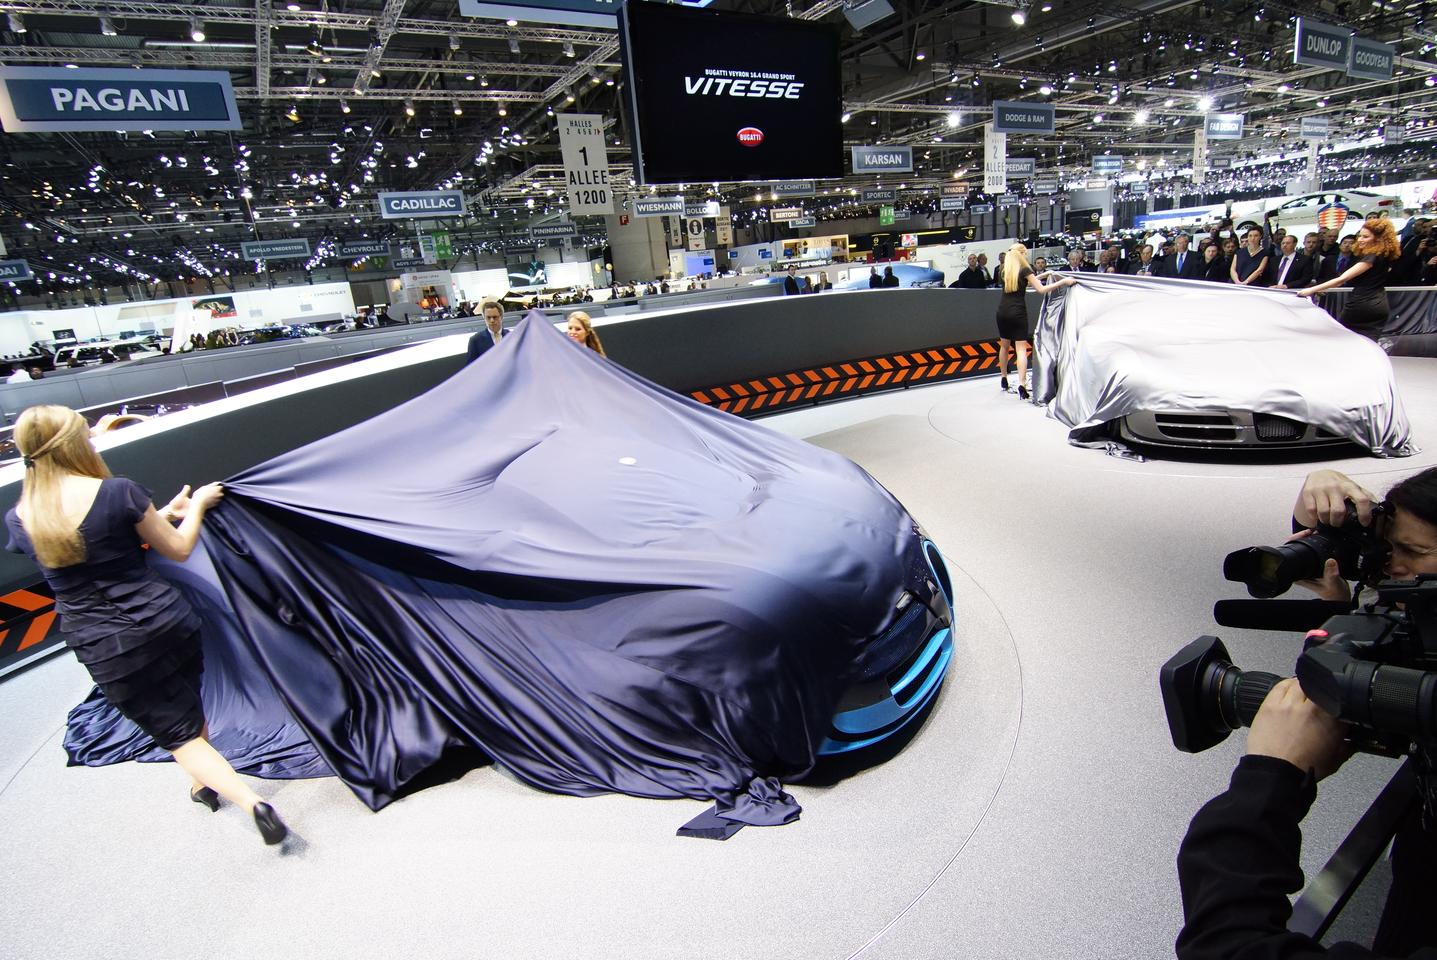 The Grand Sport Vitesse unveiling in Geneva